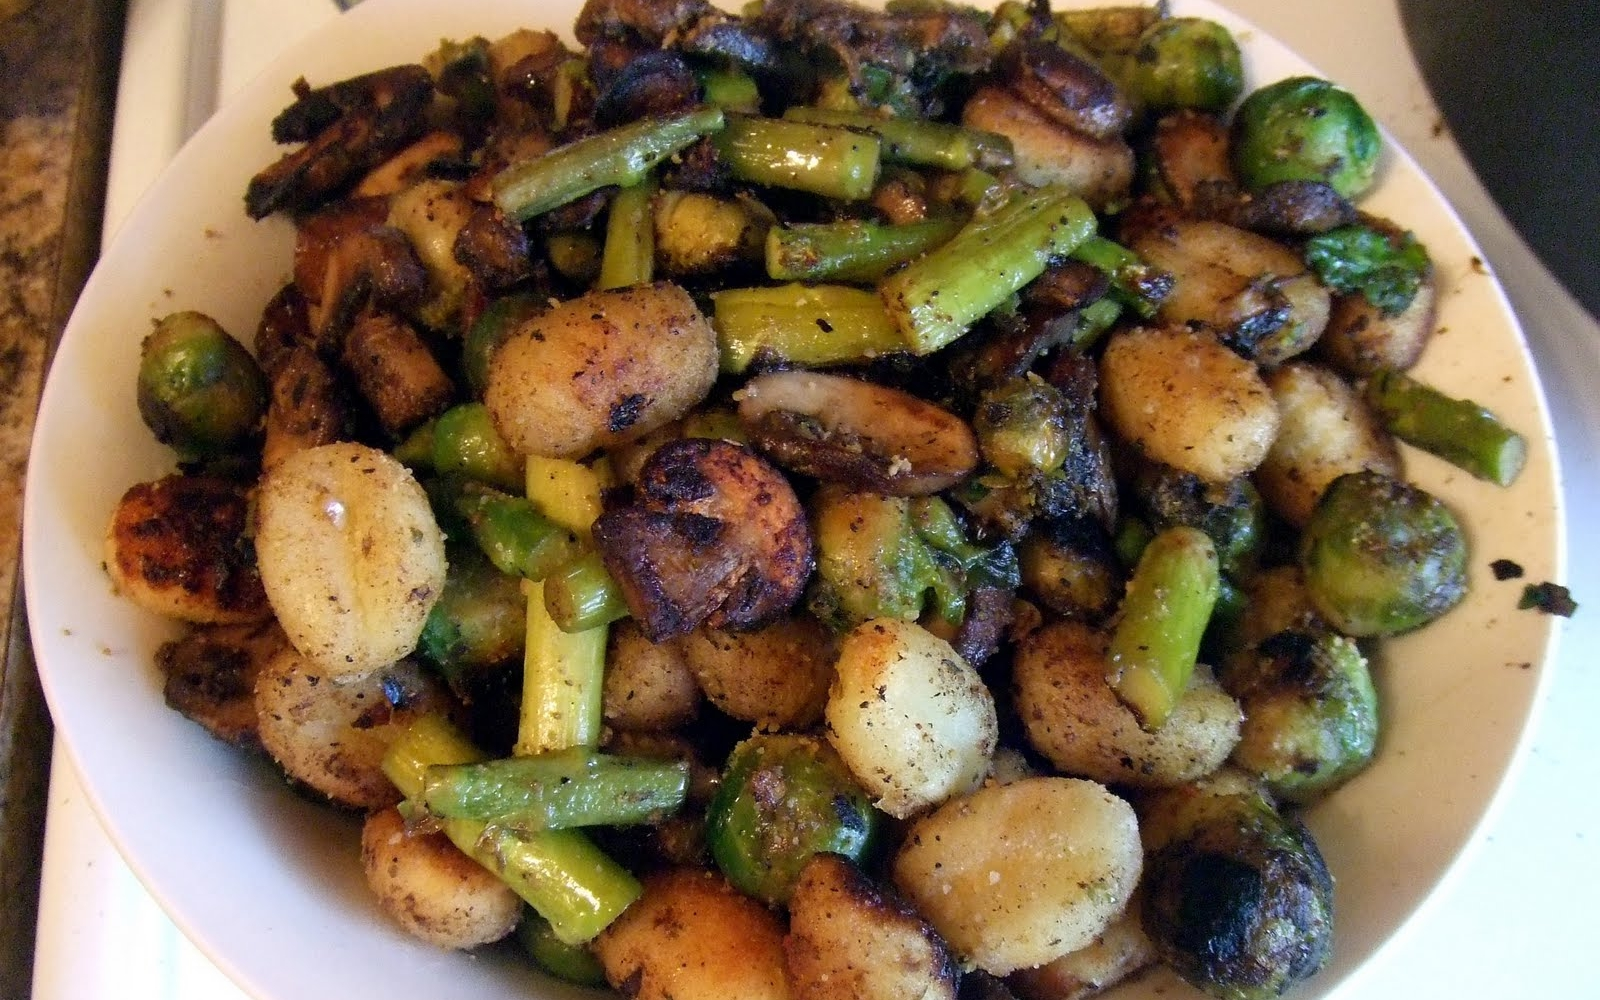 Crispy gnocchi with mushrooms, asparagus and brussels sprouts